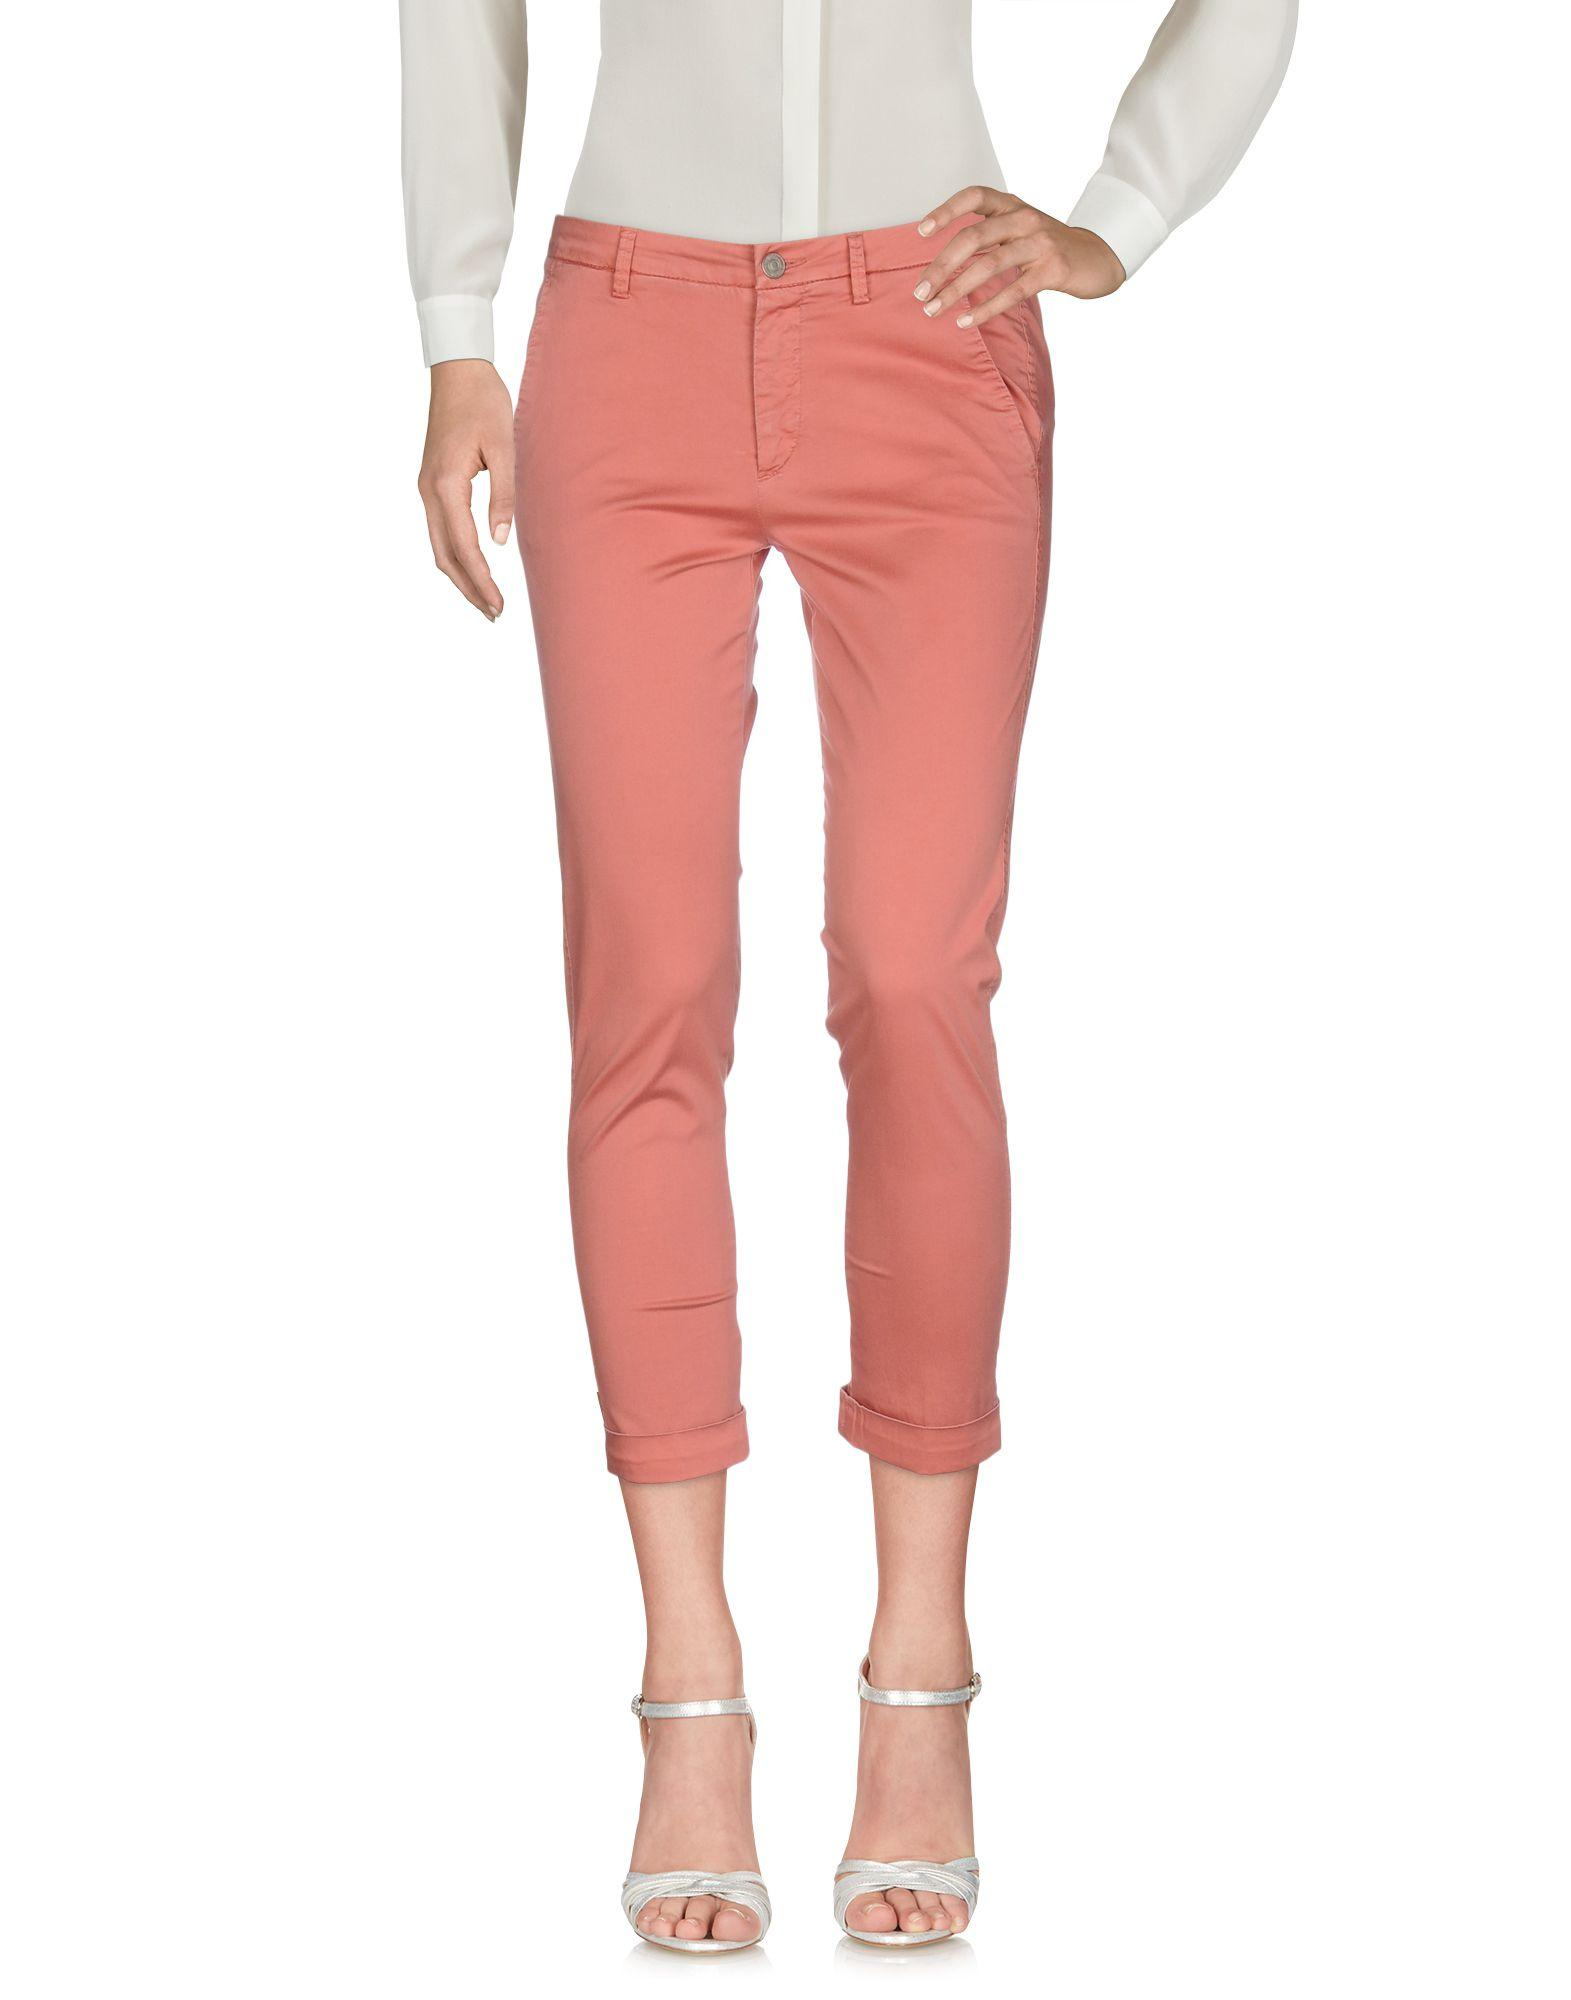 7 For All Mankind 3/4-Length Shorts In Pastel Pink